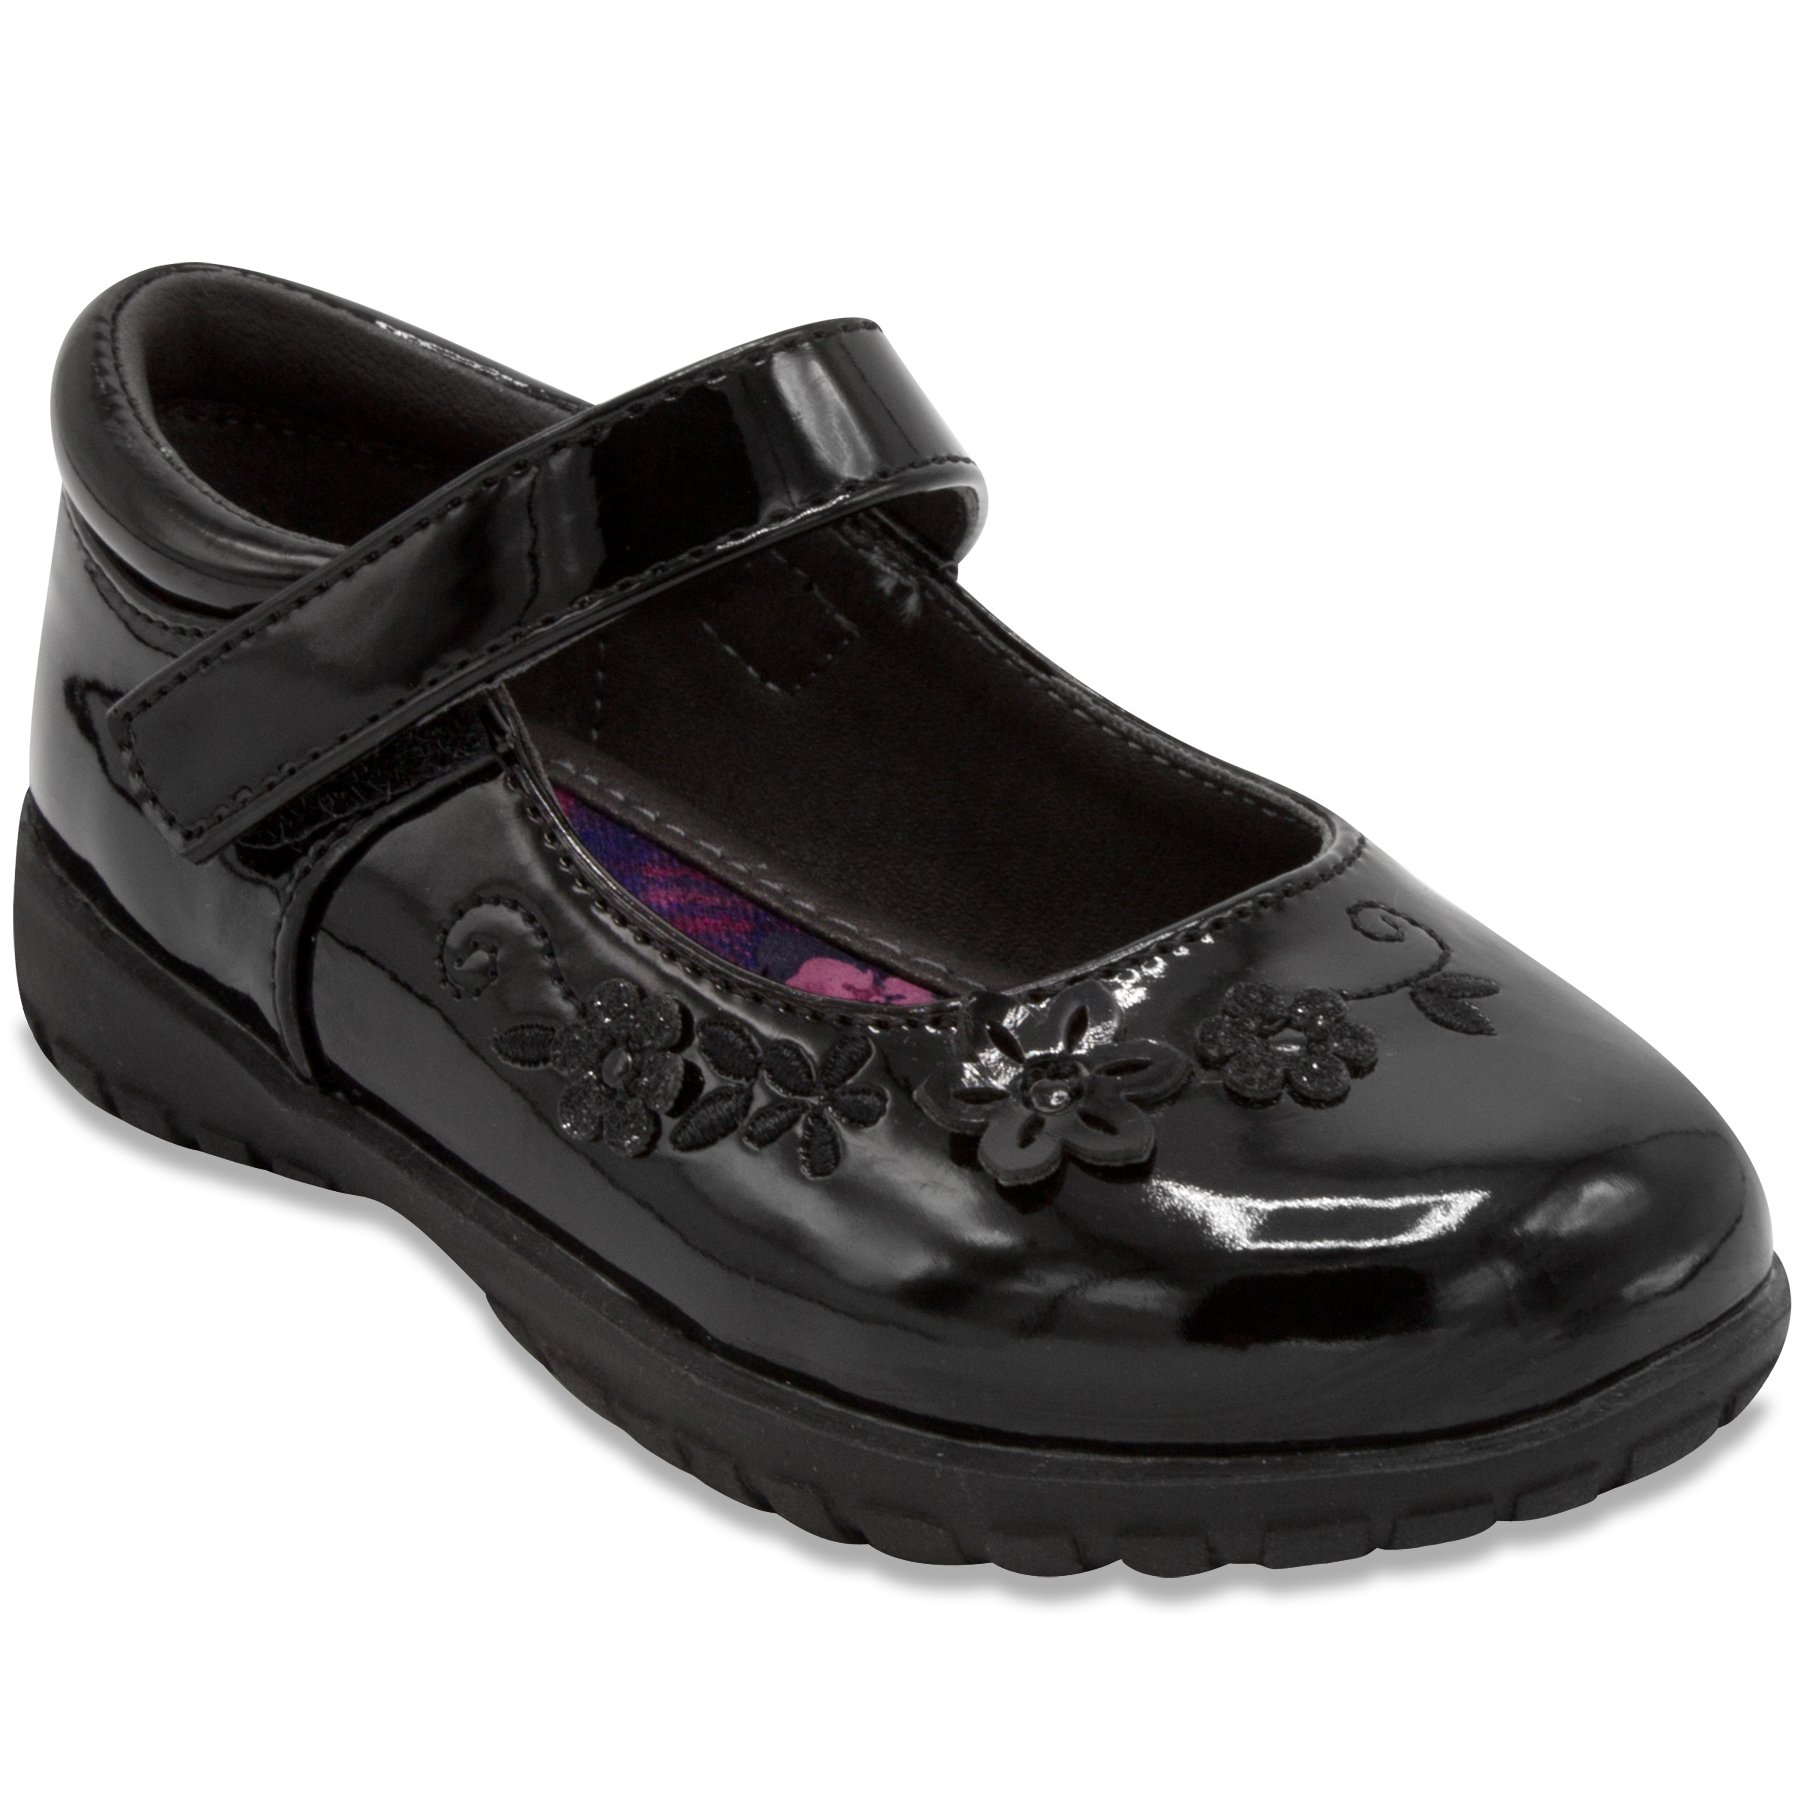 French Toast Girls Ginger Flat Mary Jane Oxford School Uniform Shoe 6 Black Patent